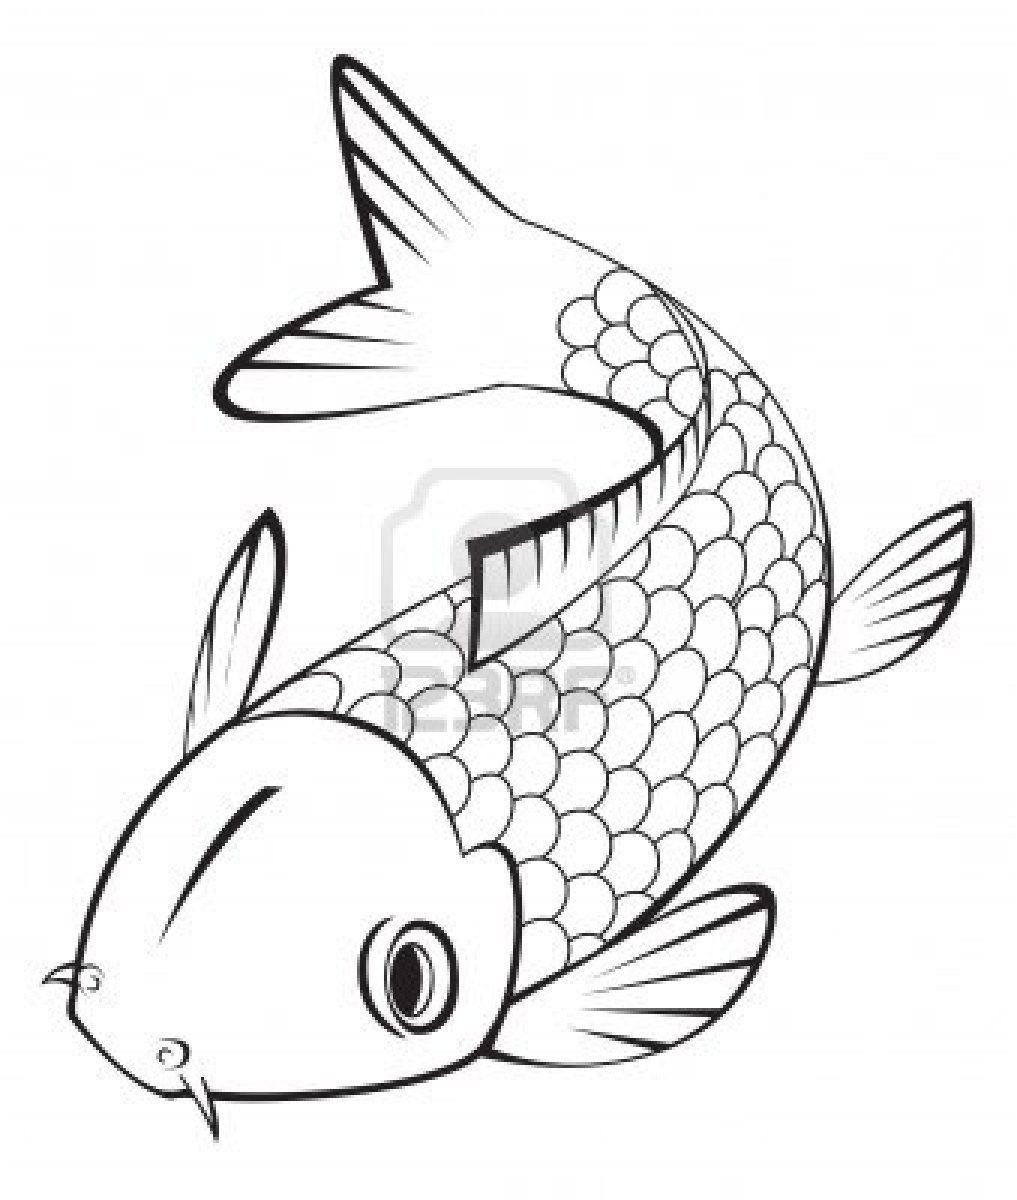 koi fish vase of fish coloring pages for adults cool coloring pages regarding download koi fish coloring pages